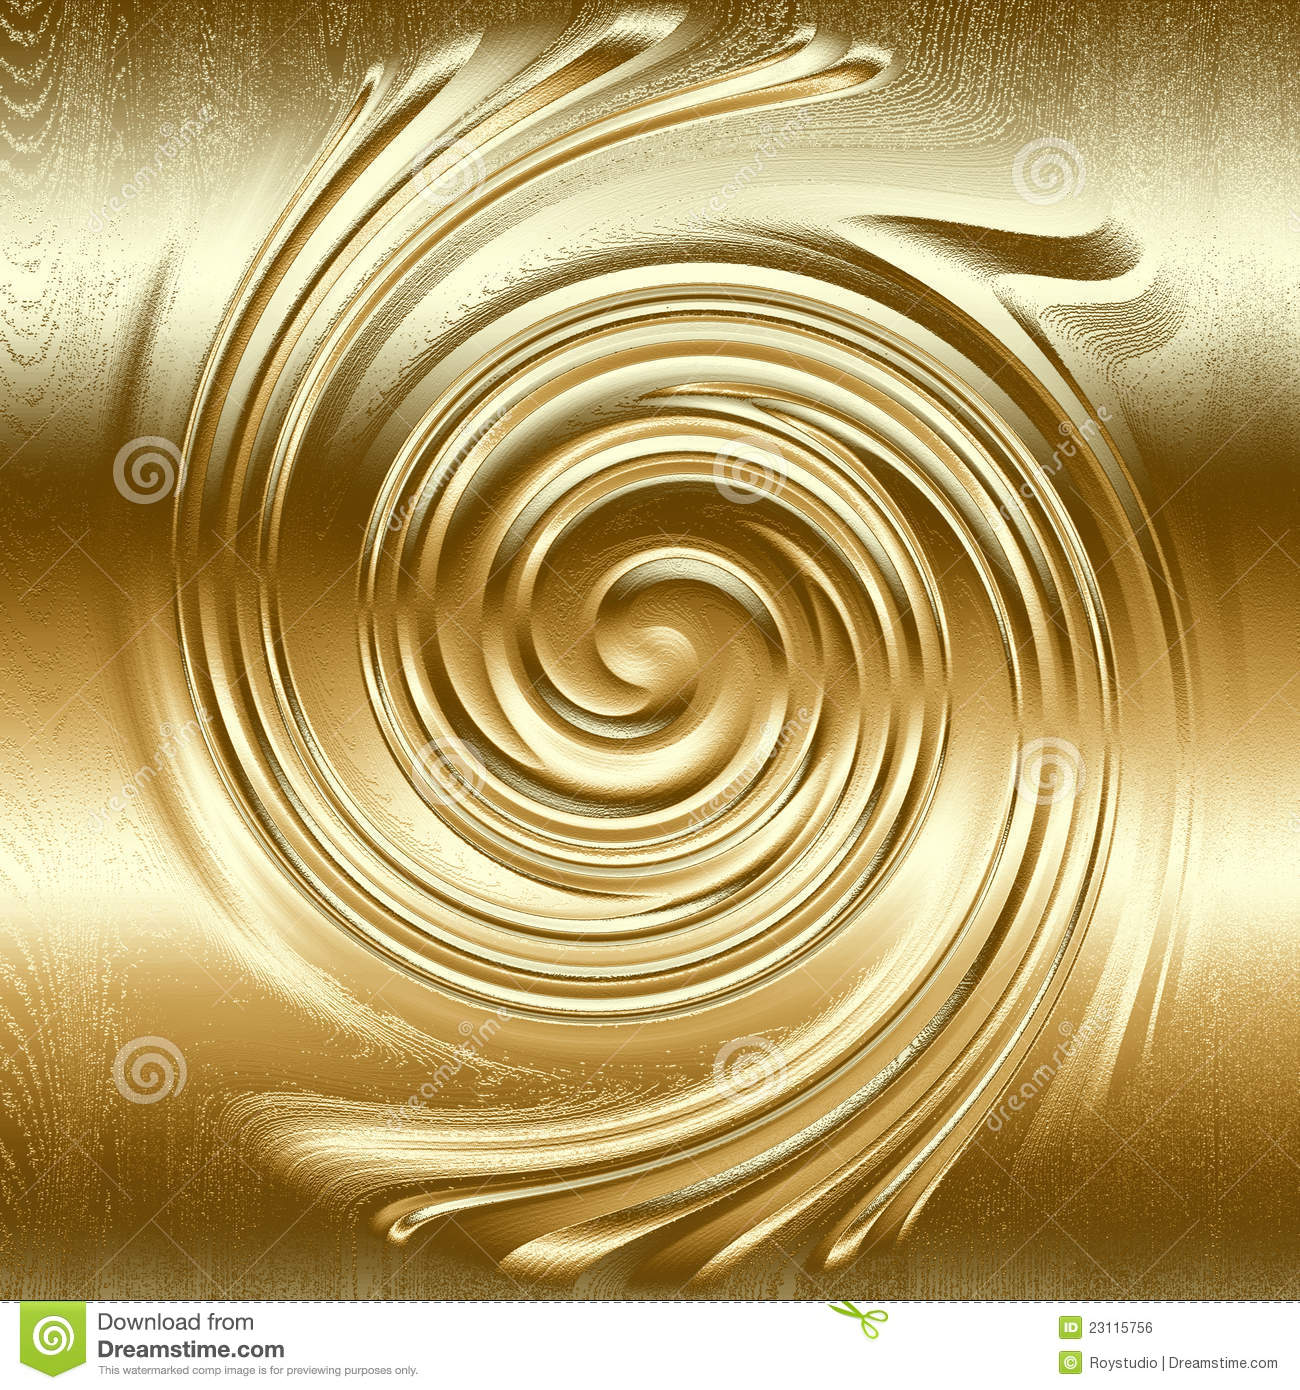 Abstract Spiral Metal Relief Gold Color Royalty Free